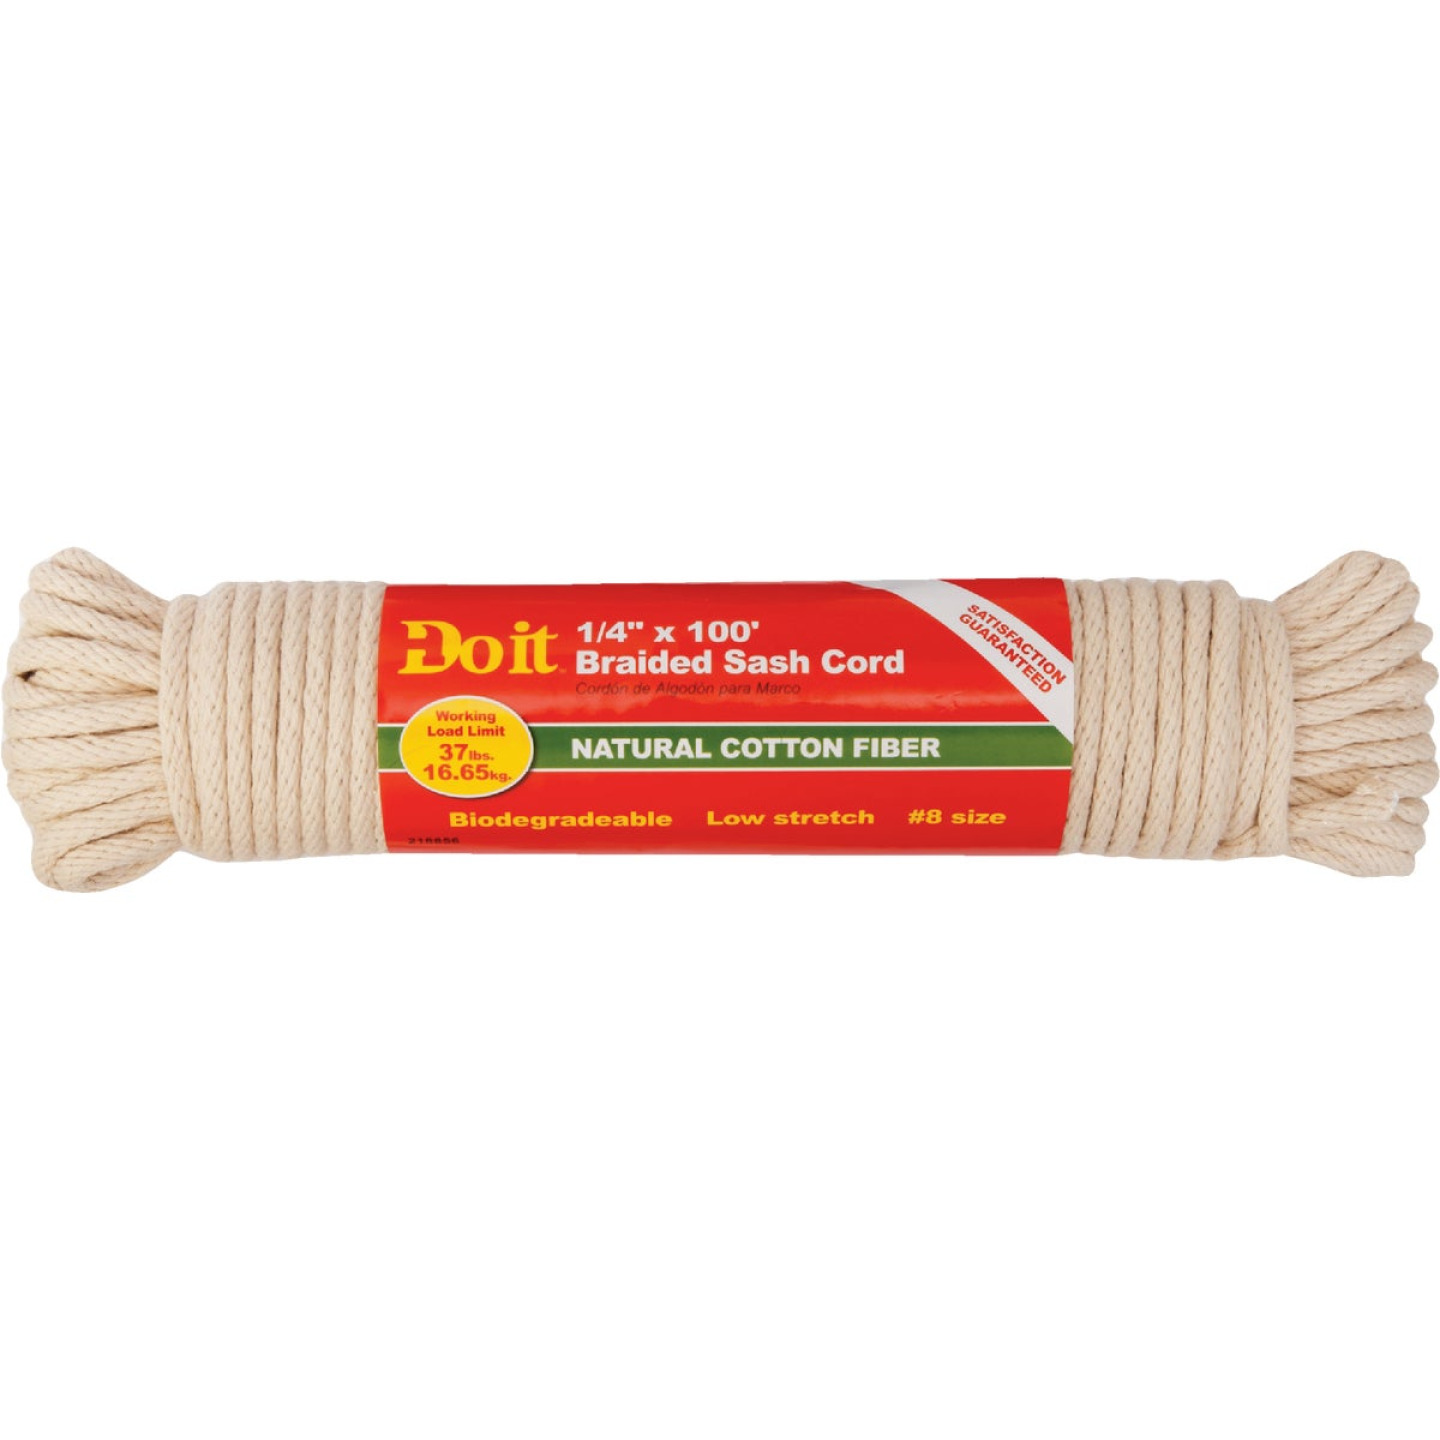 Do it 1/4 In. x 100 Ft. White Solid Braided Cotton Sash Cord Image 2